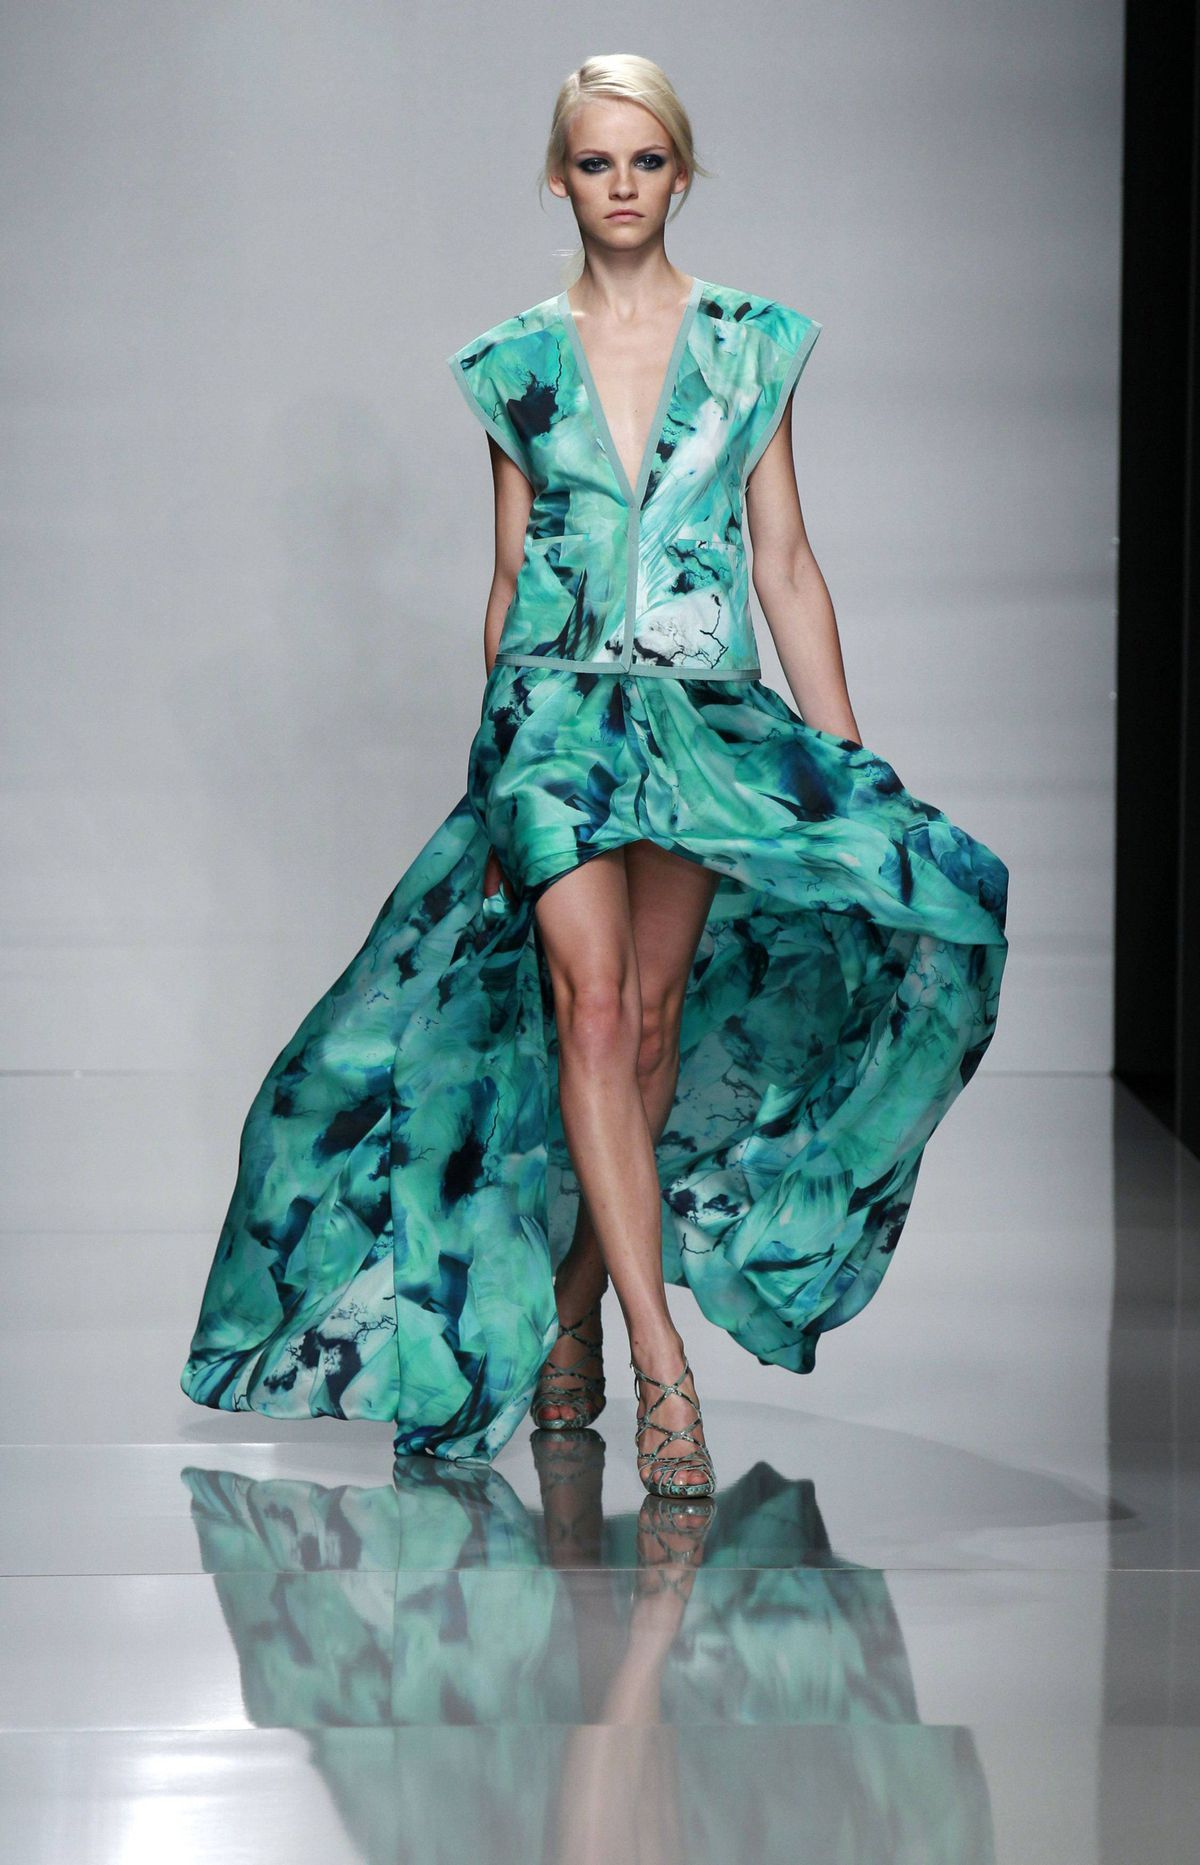 Ungaro Spring/Summer 2012 ready-to-wear collection Pity Ungaro, a venerable label that has suffered from designer turnover (ahem, Lindsay Lohan) and what appears to be internal creative tension. Jeanne Labib-Lamour, 29, took the bow on Monday, having been named chief designer, less than a month after Brit Giles Deacon ended his stint.